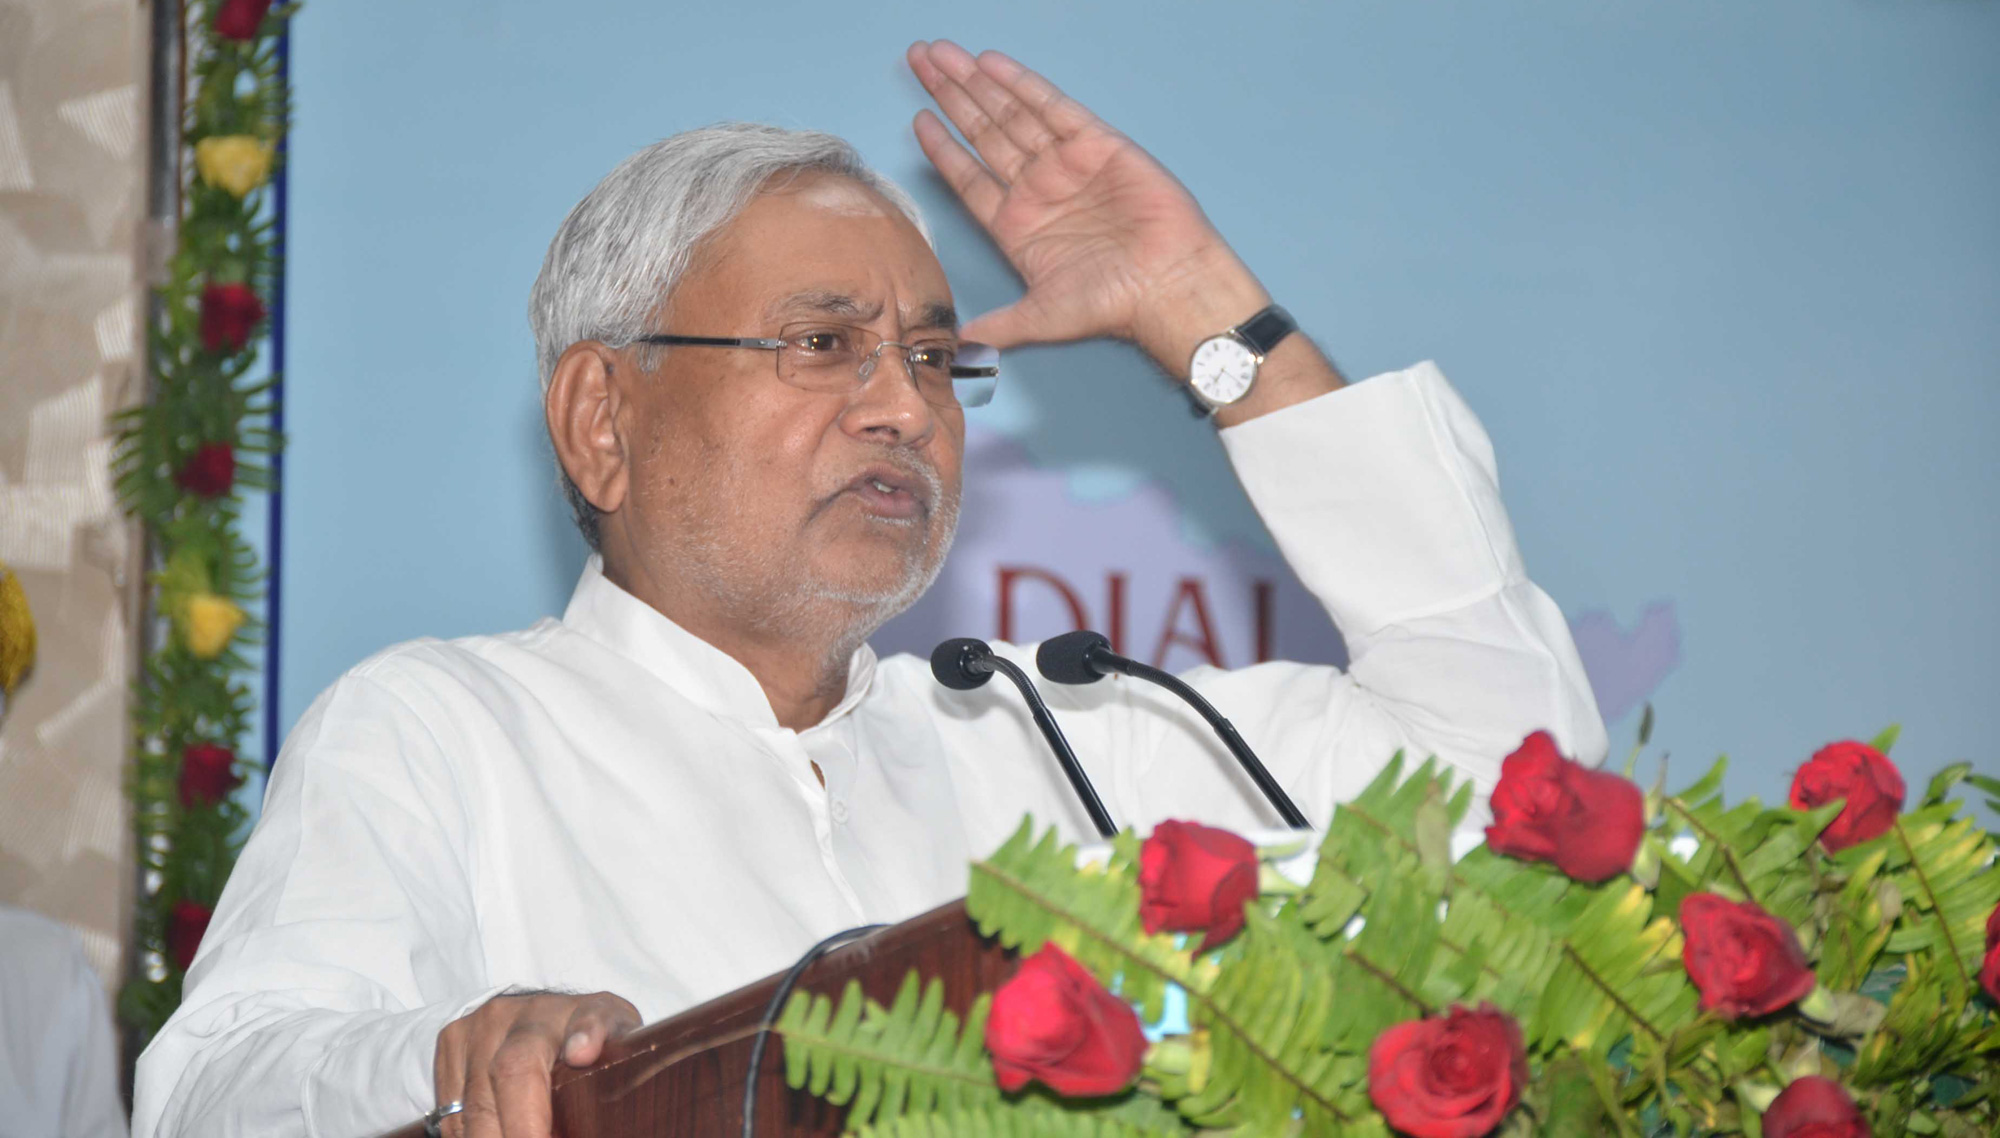 Bihar chief minister Nitish Kumar has asked entrepreneurs of the industry-starved state to help set up cowsheds for producing organic fertilisers and pesticides.